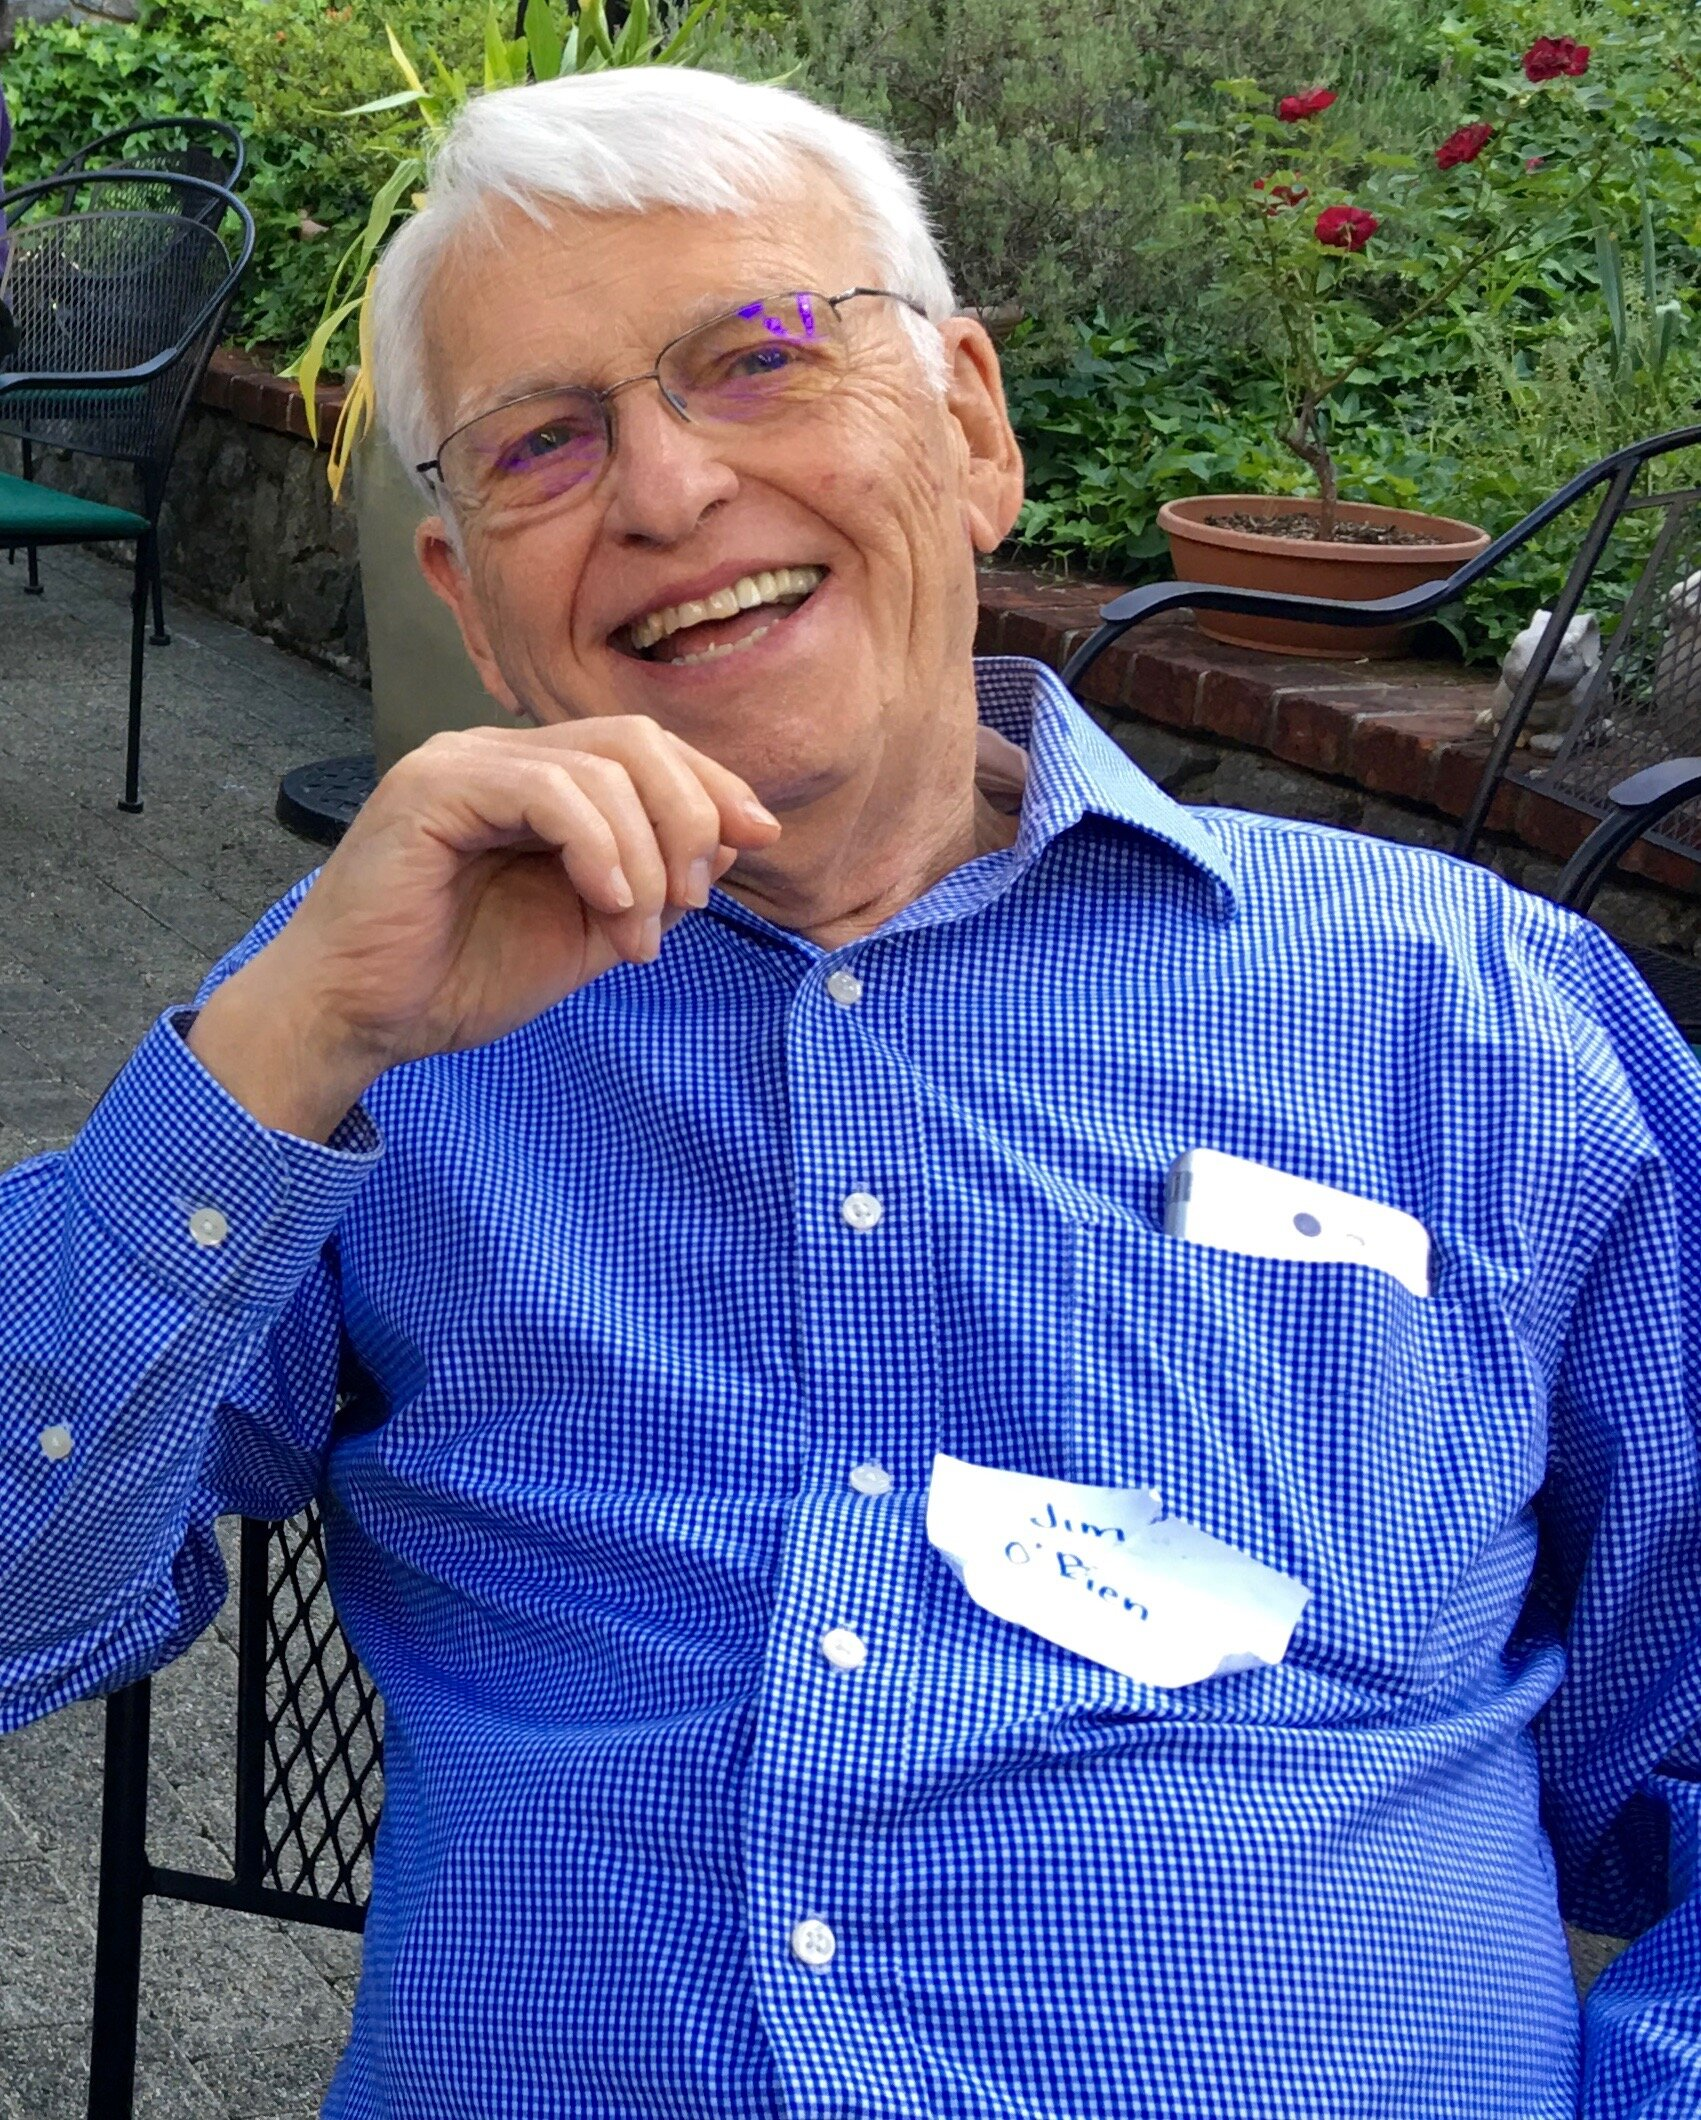 Jim at the Sierra Roots Community Builders Dinner in Grass Valley, May 29, 2019